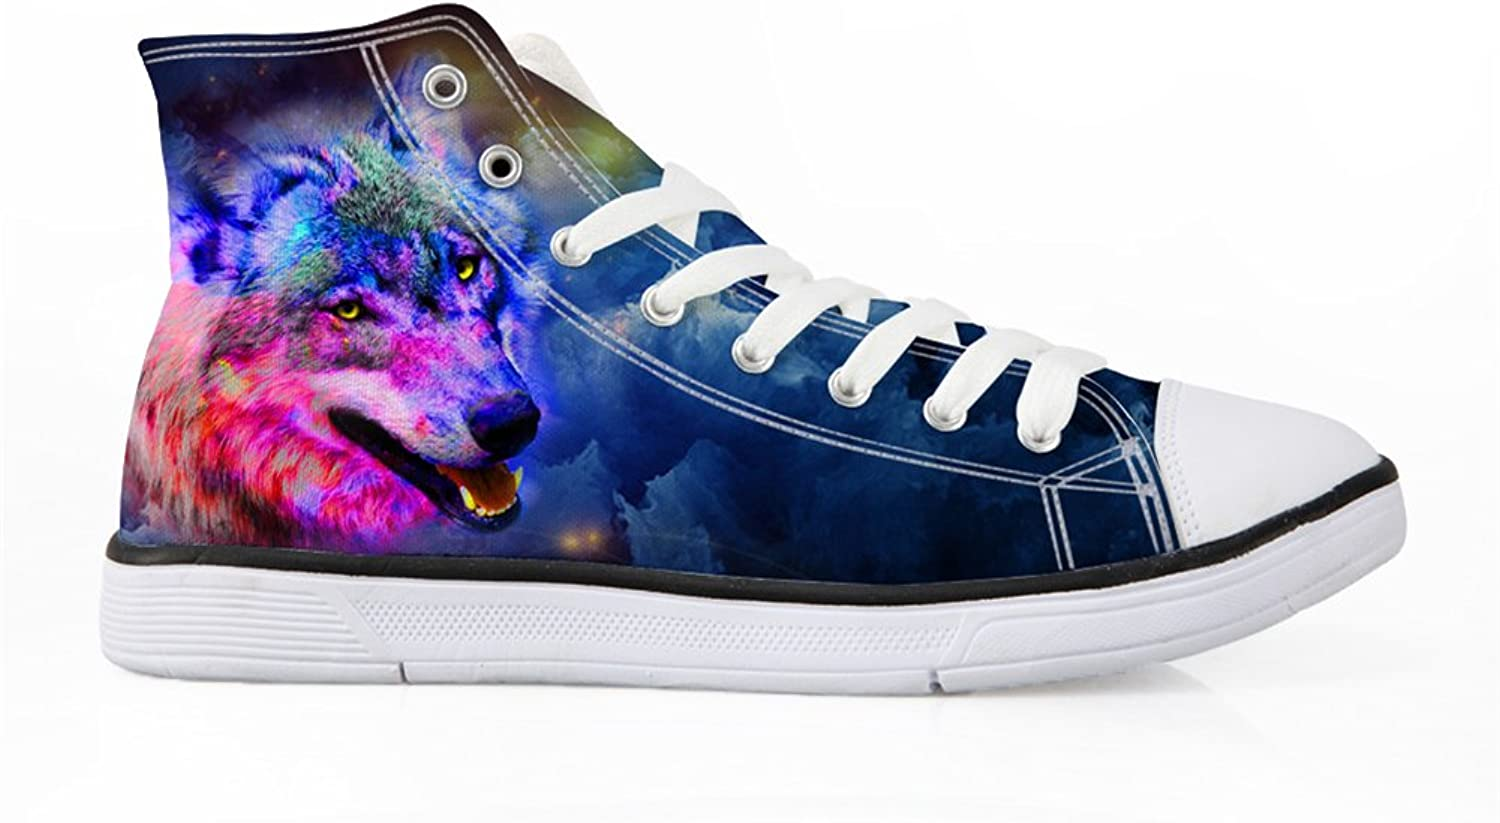 Bigcardesigns Lace-ups Sneakers Men Male Casual Canvas shoes Fashion High Tops Plimsolls Wolf Print Walking Jogging Athletic shoes